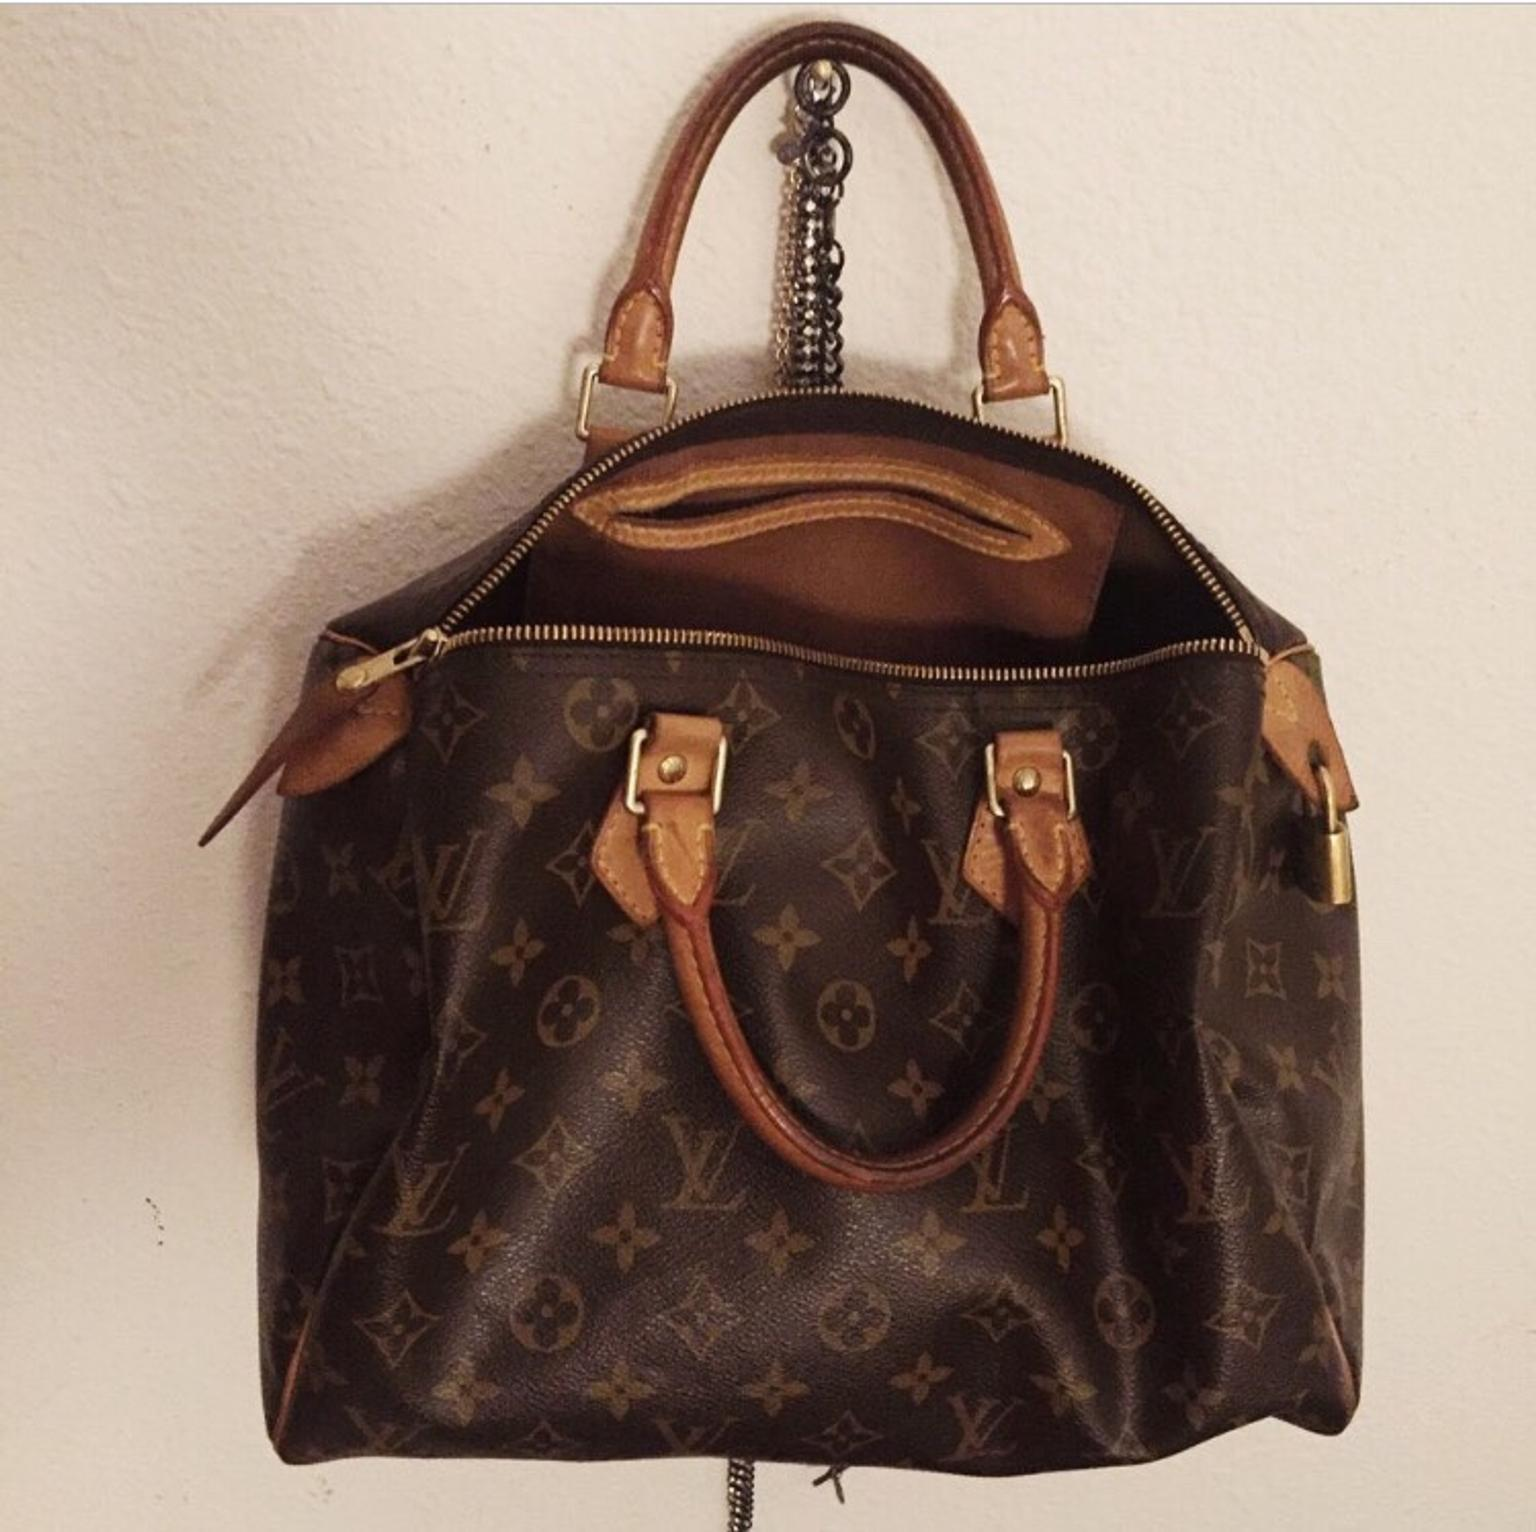 Bauletto louis vuitton speedy 35 in 10124 Torino for €290 for sale - Shpock 7c34905adb13